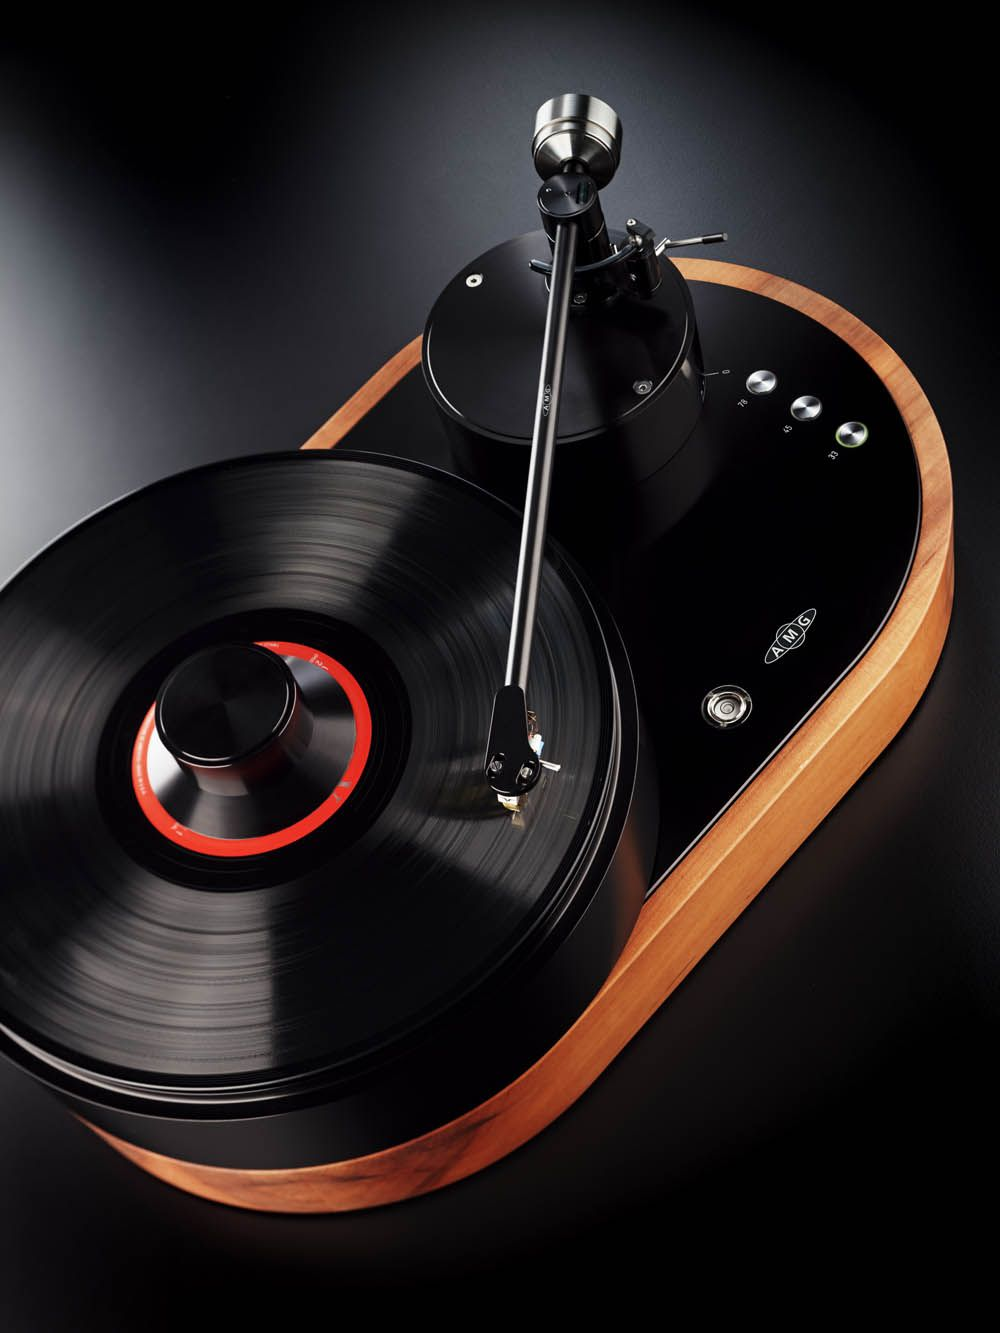 #musicmonday Utterly gorgeous turntable, from AMG Turntables. I'll be in my bunk. Imagining listening to Mozart on this thing.